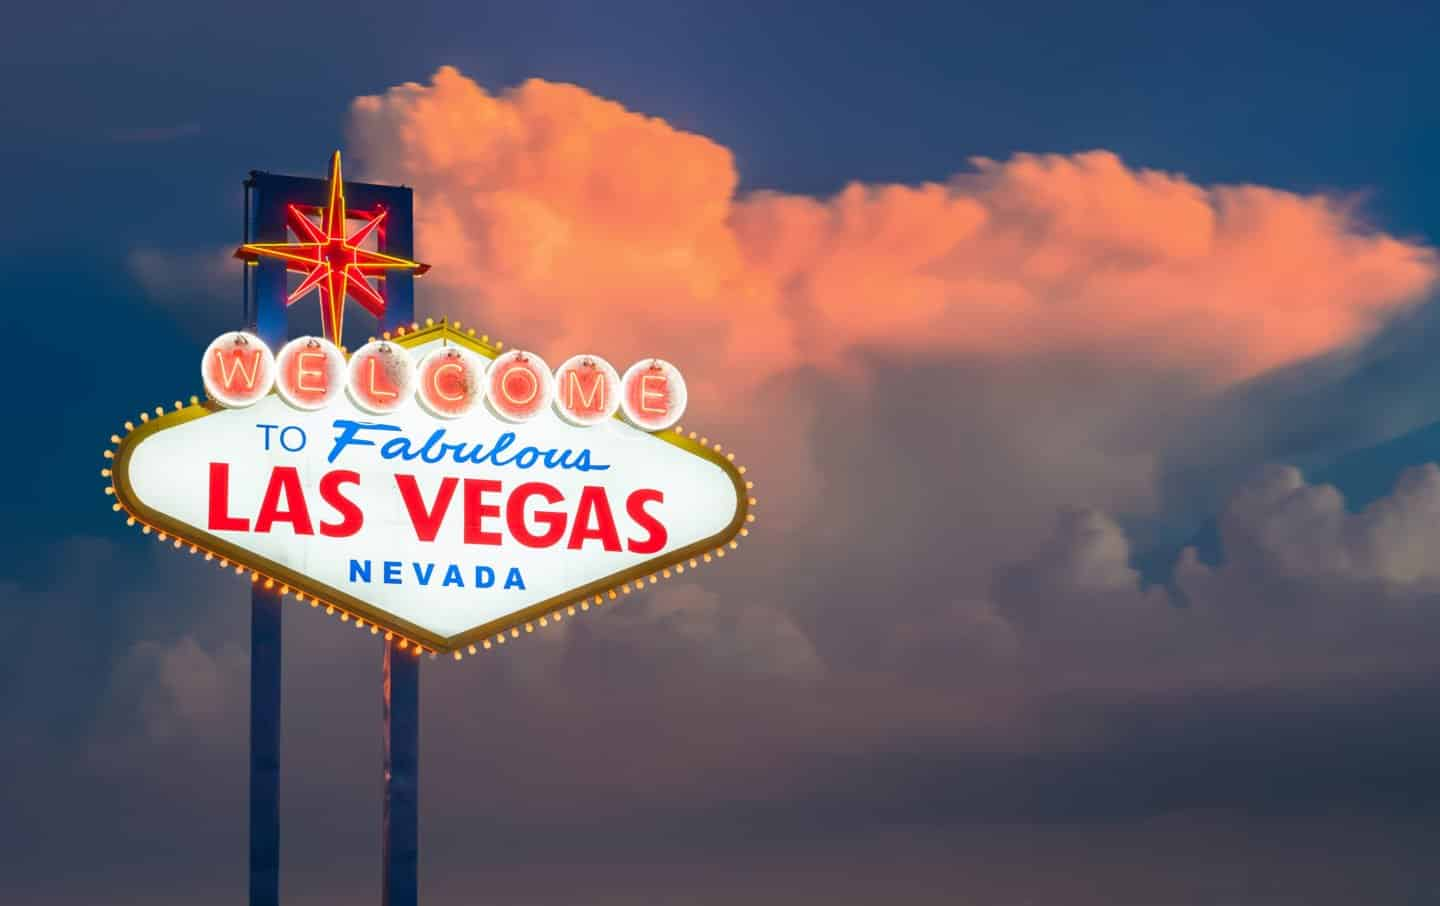 The Welcome to Fabulous Las Vegas sign in Las Vegas, Nevada USA sunset